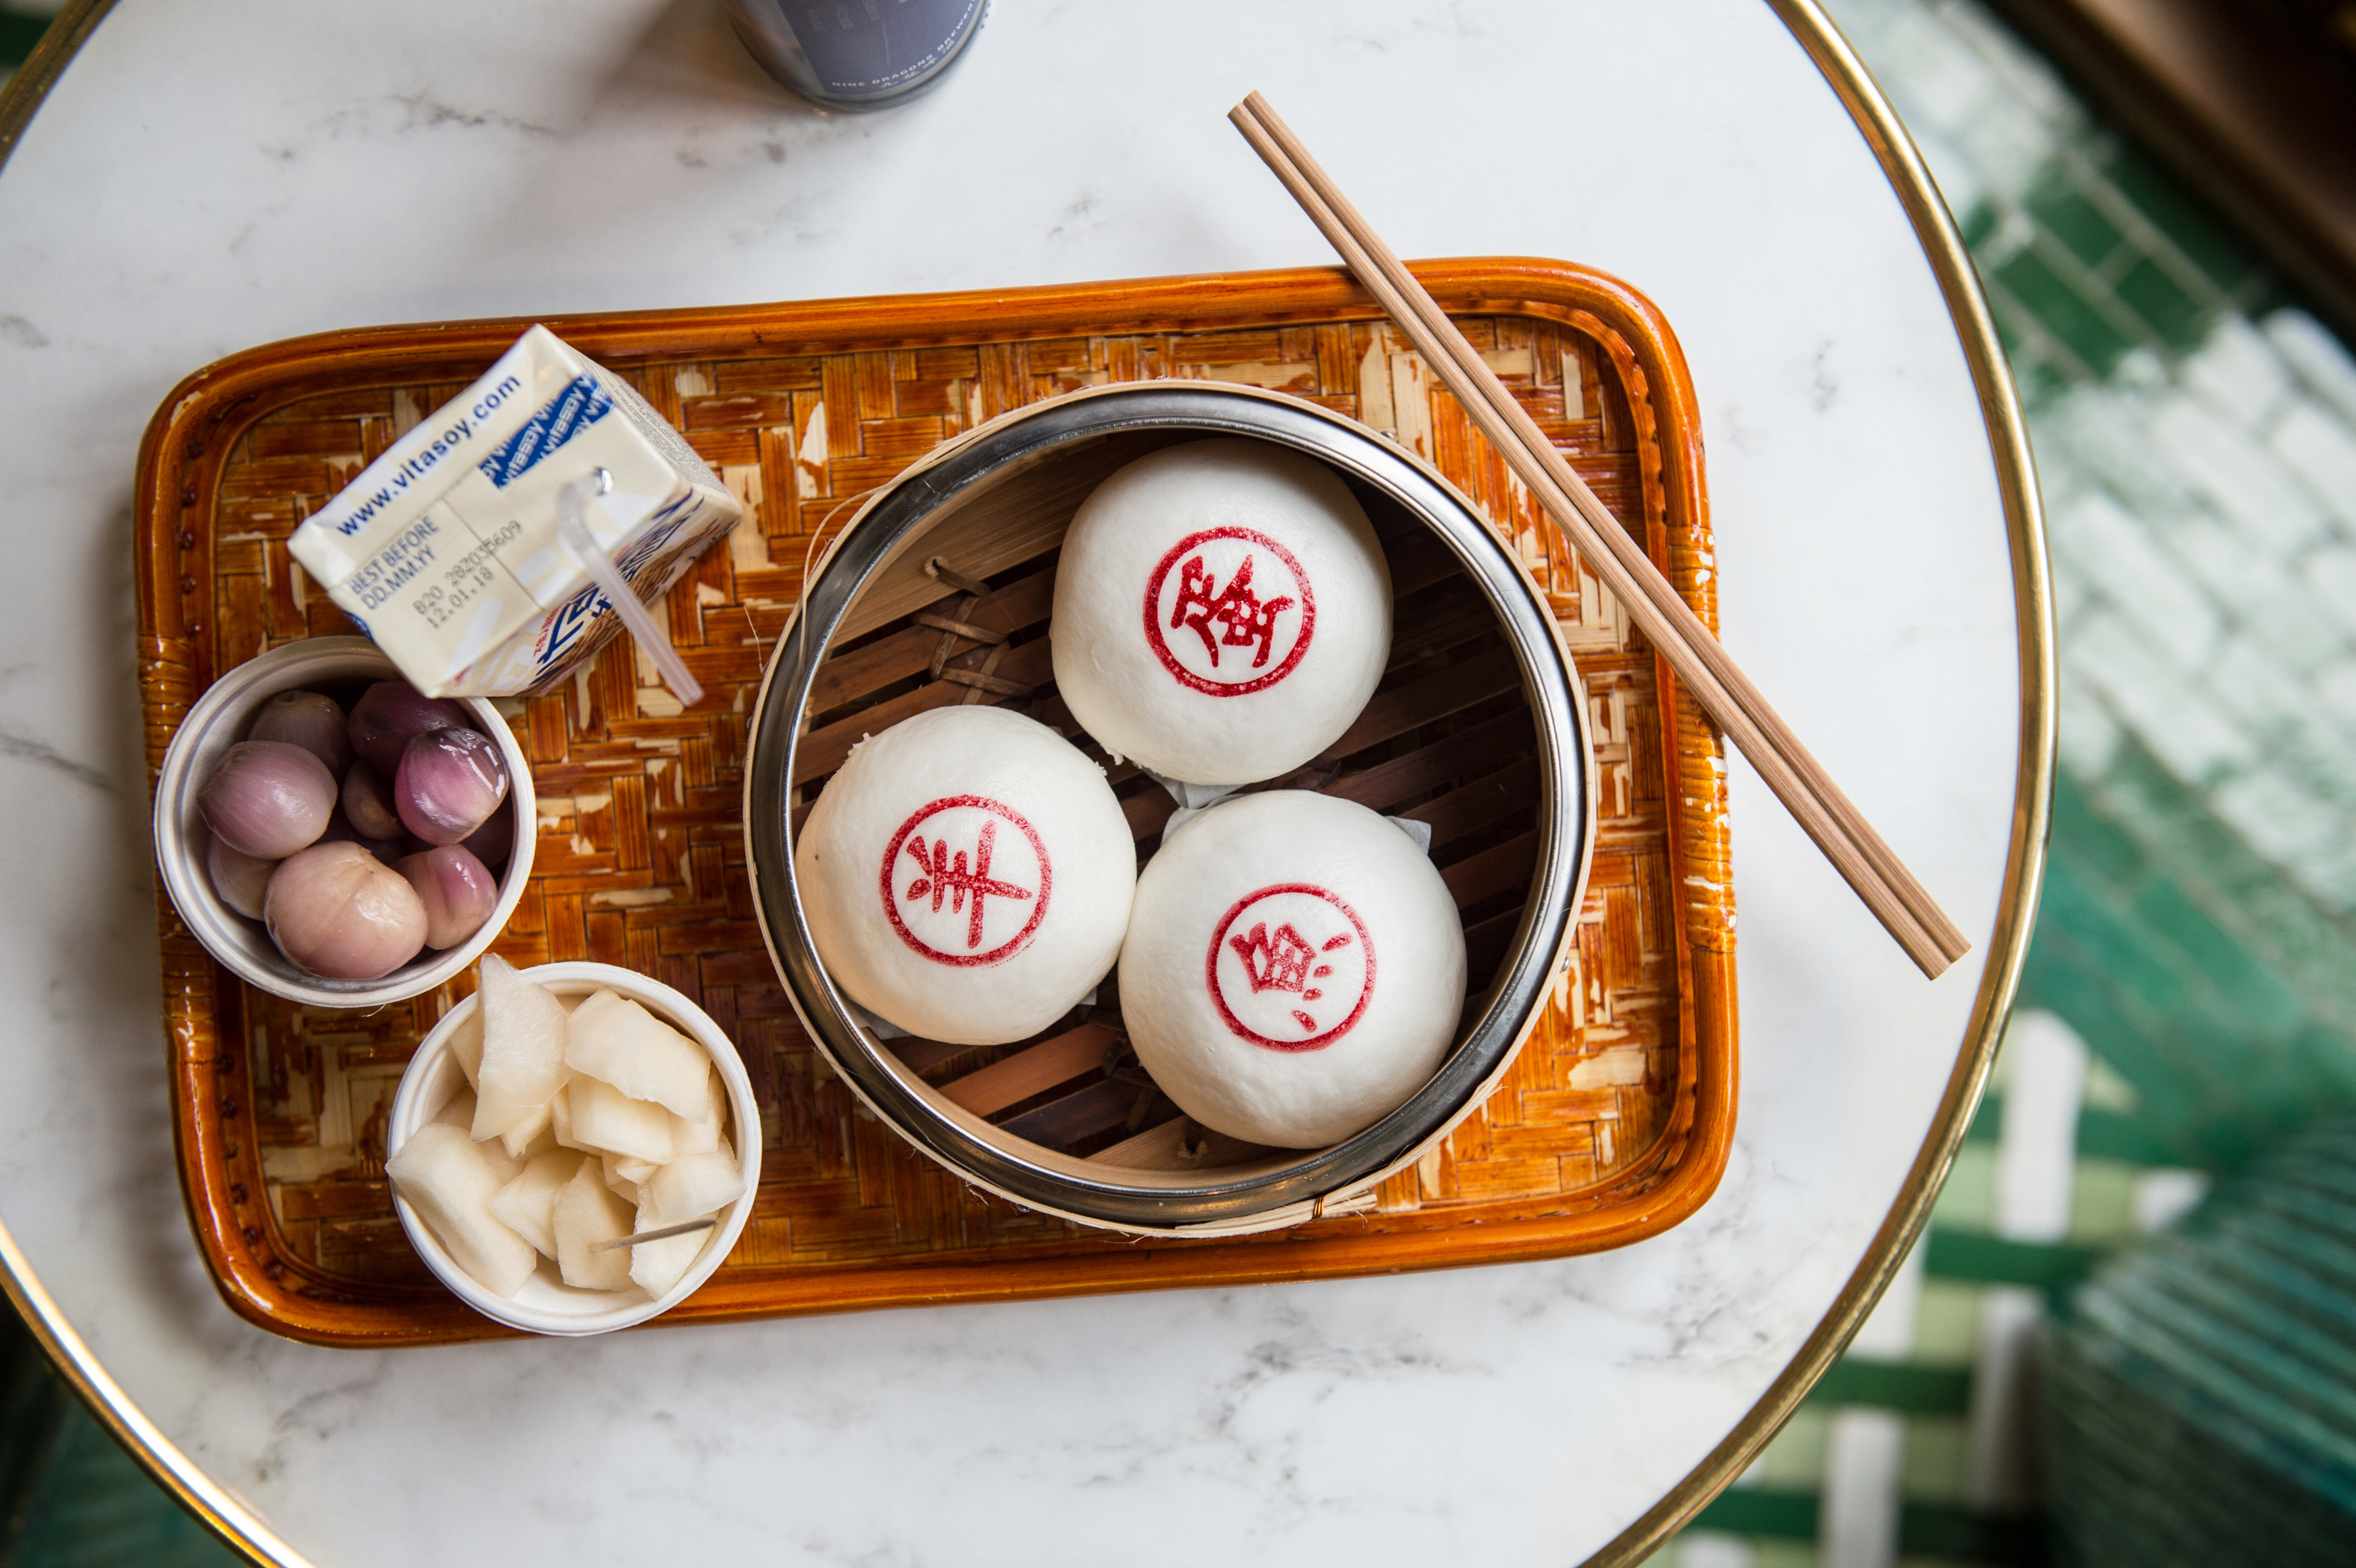 Bun House Chinese tearoom and restaurant in Soho sets Chinatown opening date as April 16